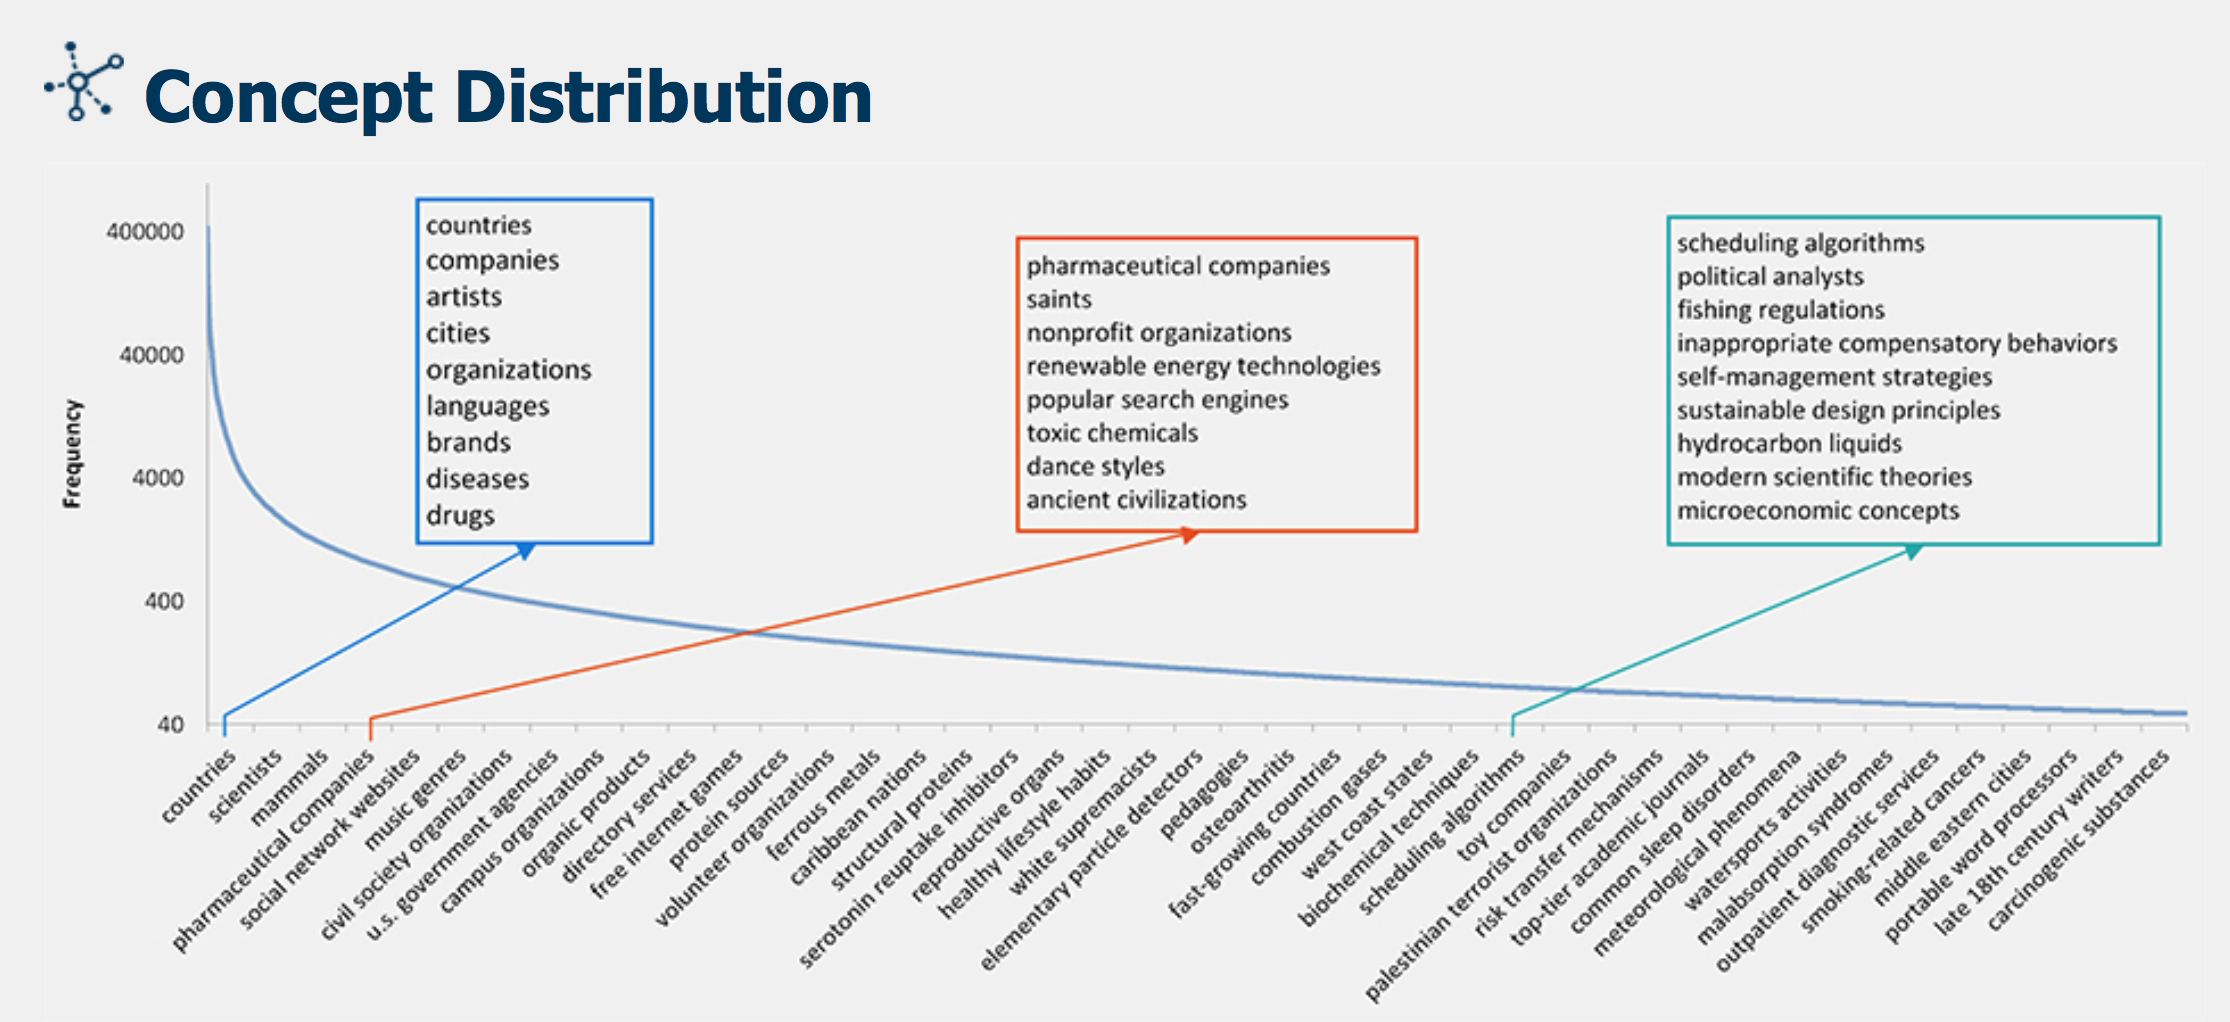 Microsoft Research's distribution of concepts in the Concept Graph.